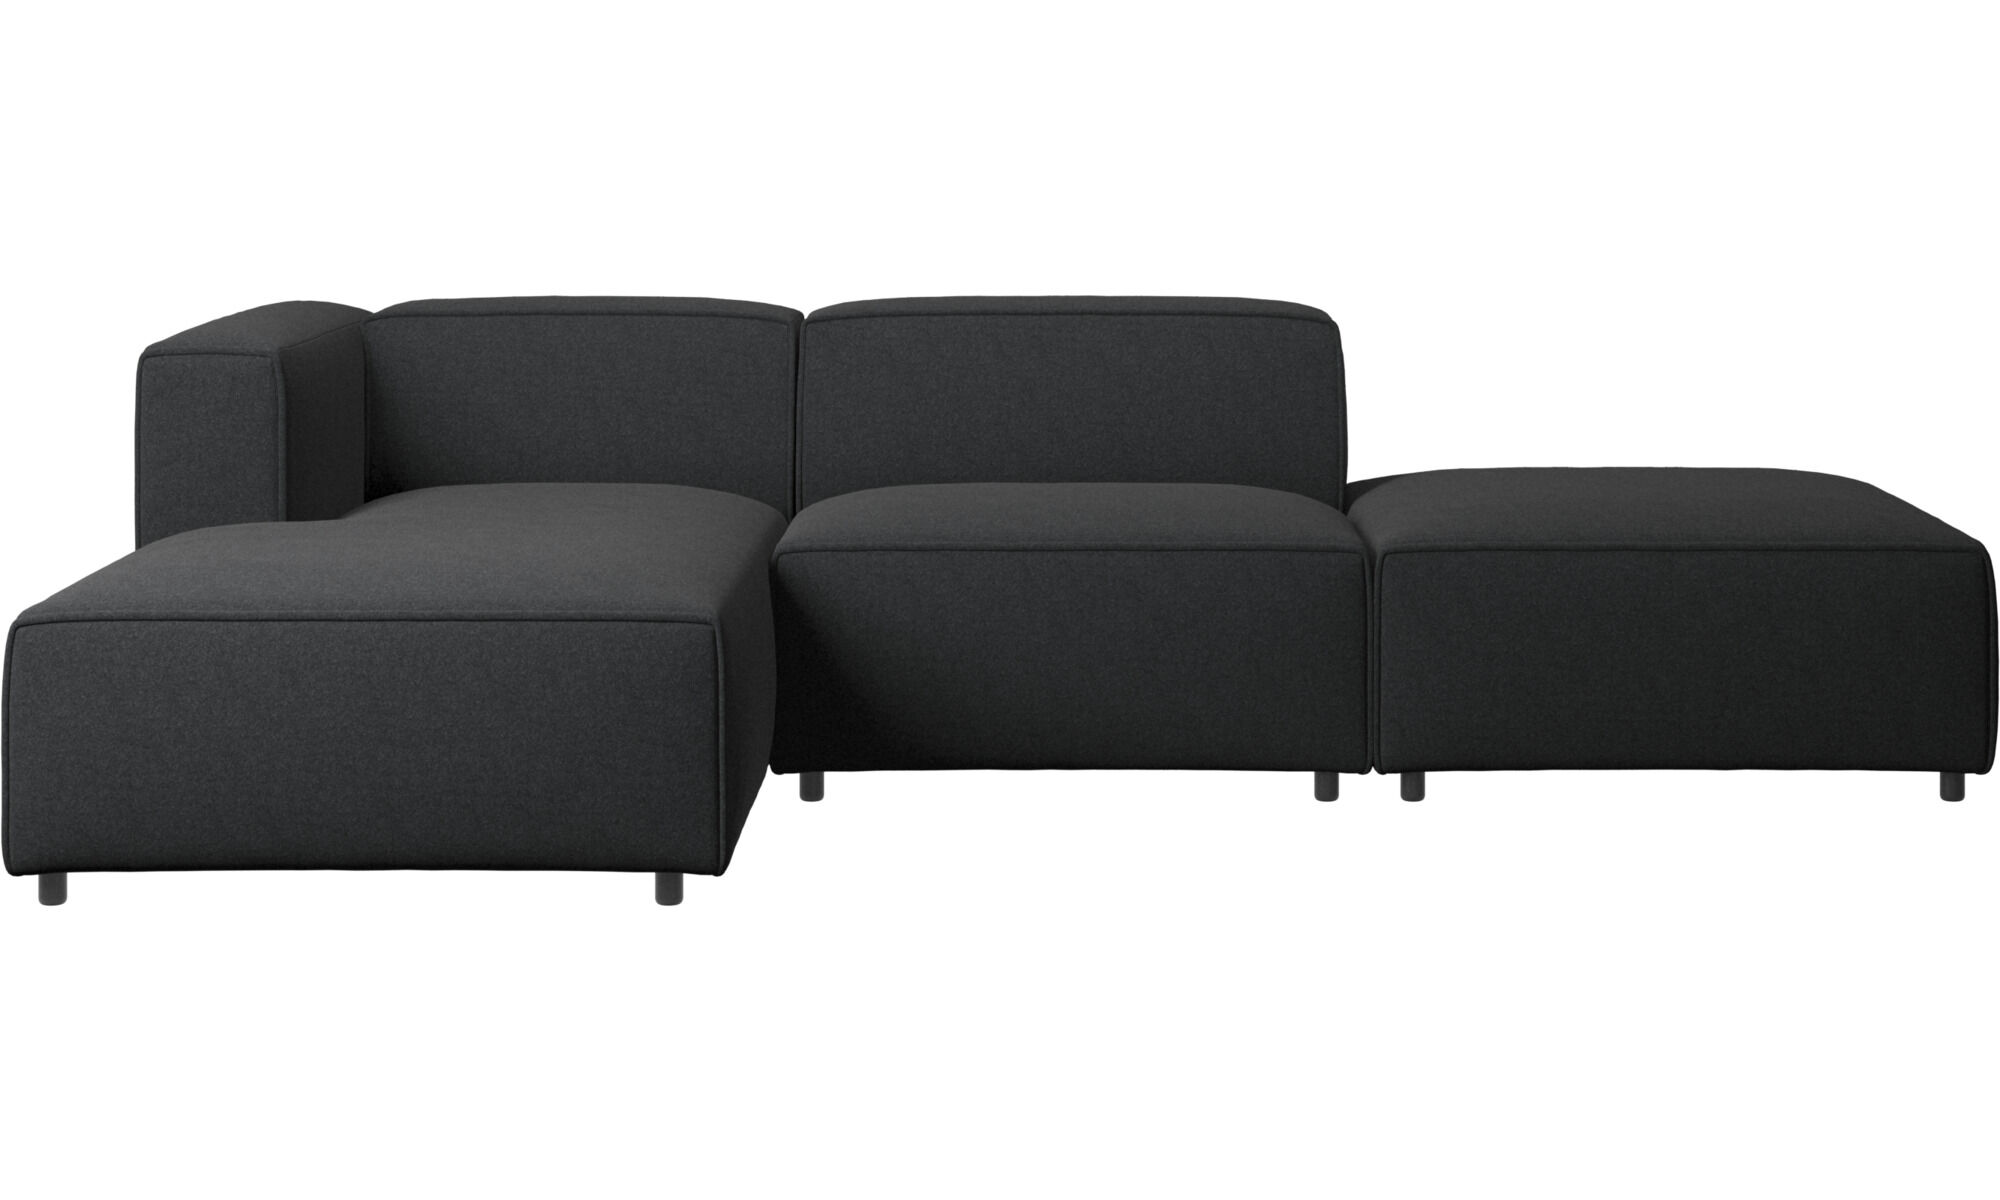 Chaise Lounge Sofas   Carmo Sofa With Lounging And Resting Unit   Gray    Fabric ...